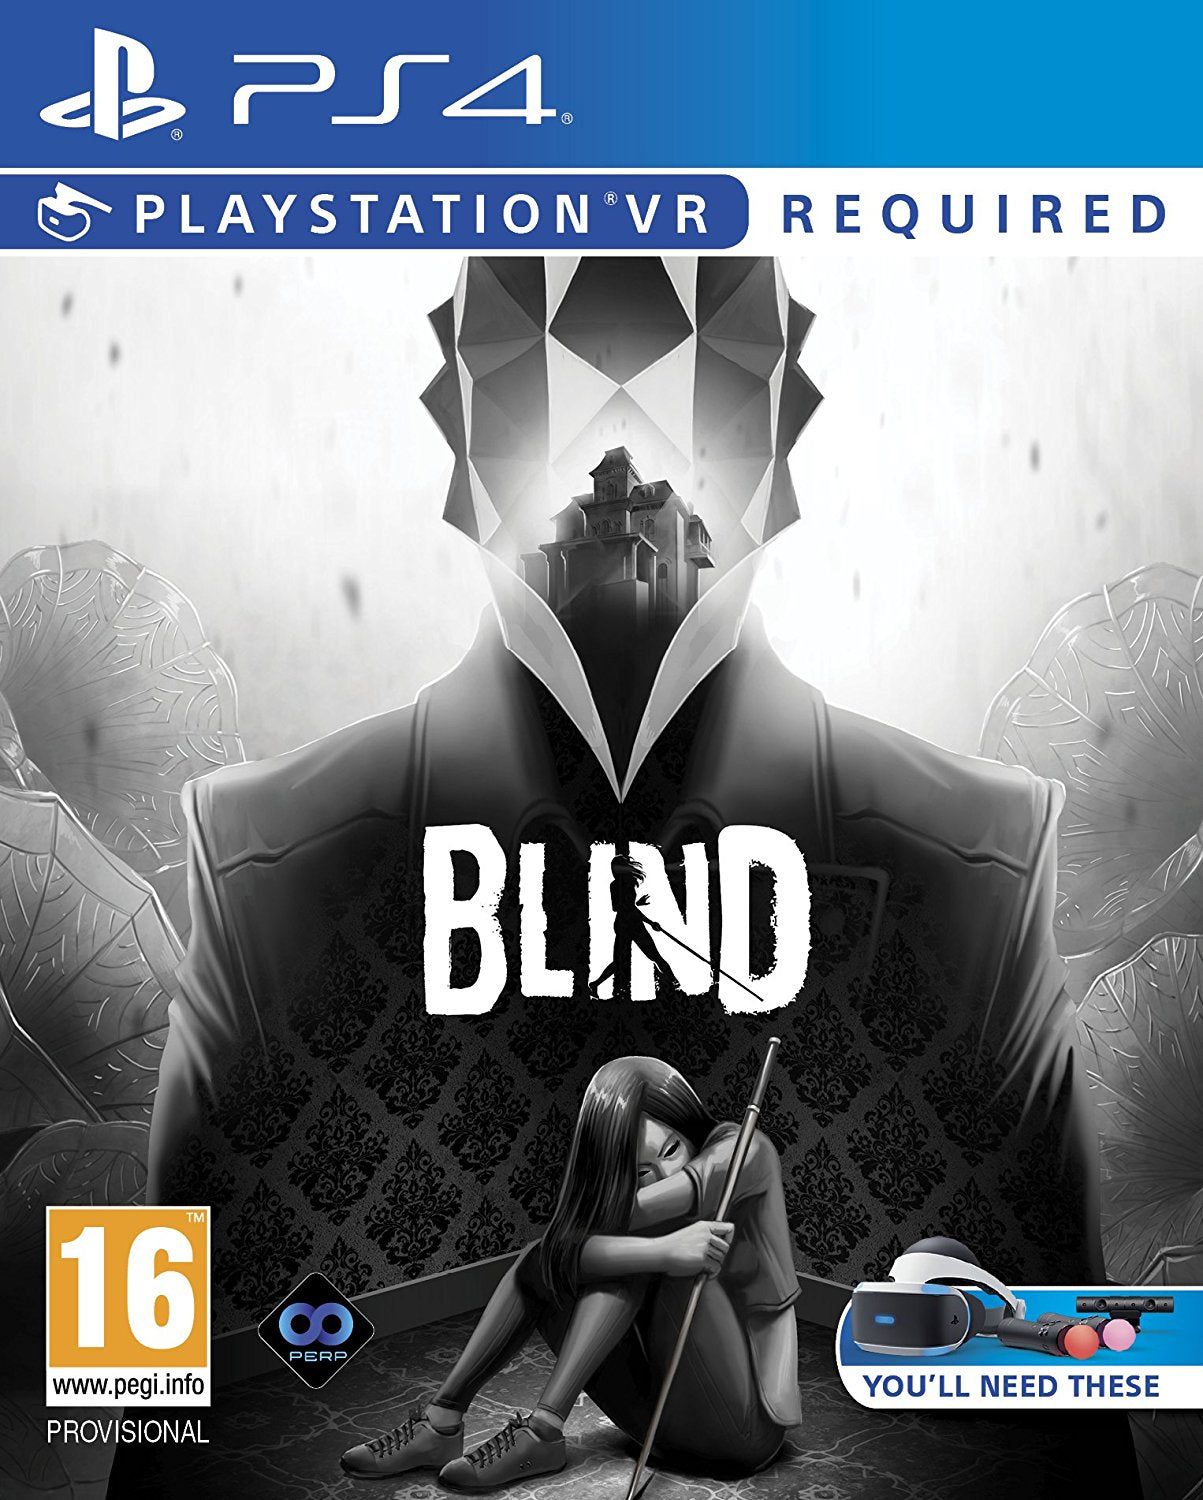 Blind - PlayStation VR - Video Games by Perpetual Europe The Chelsea Gamer